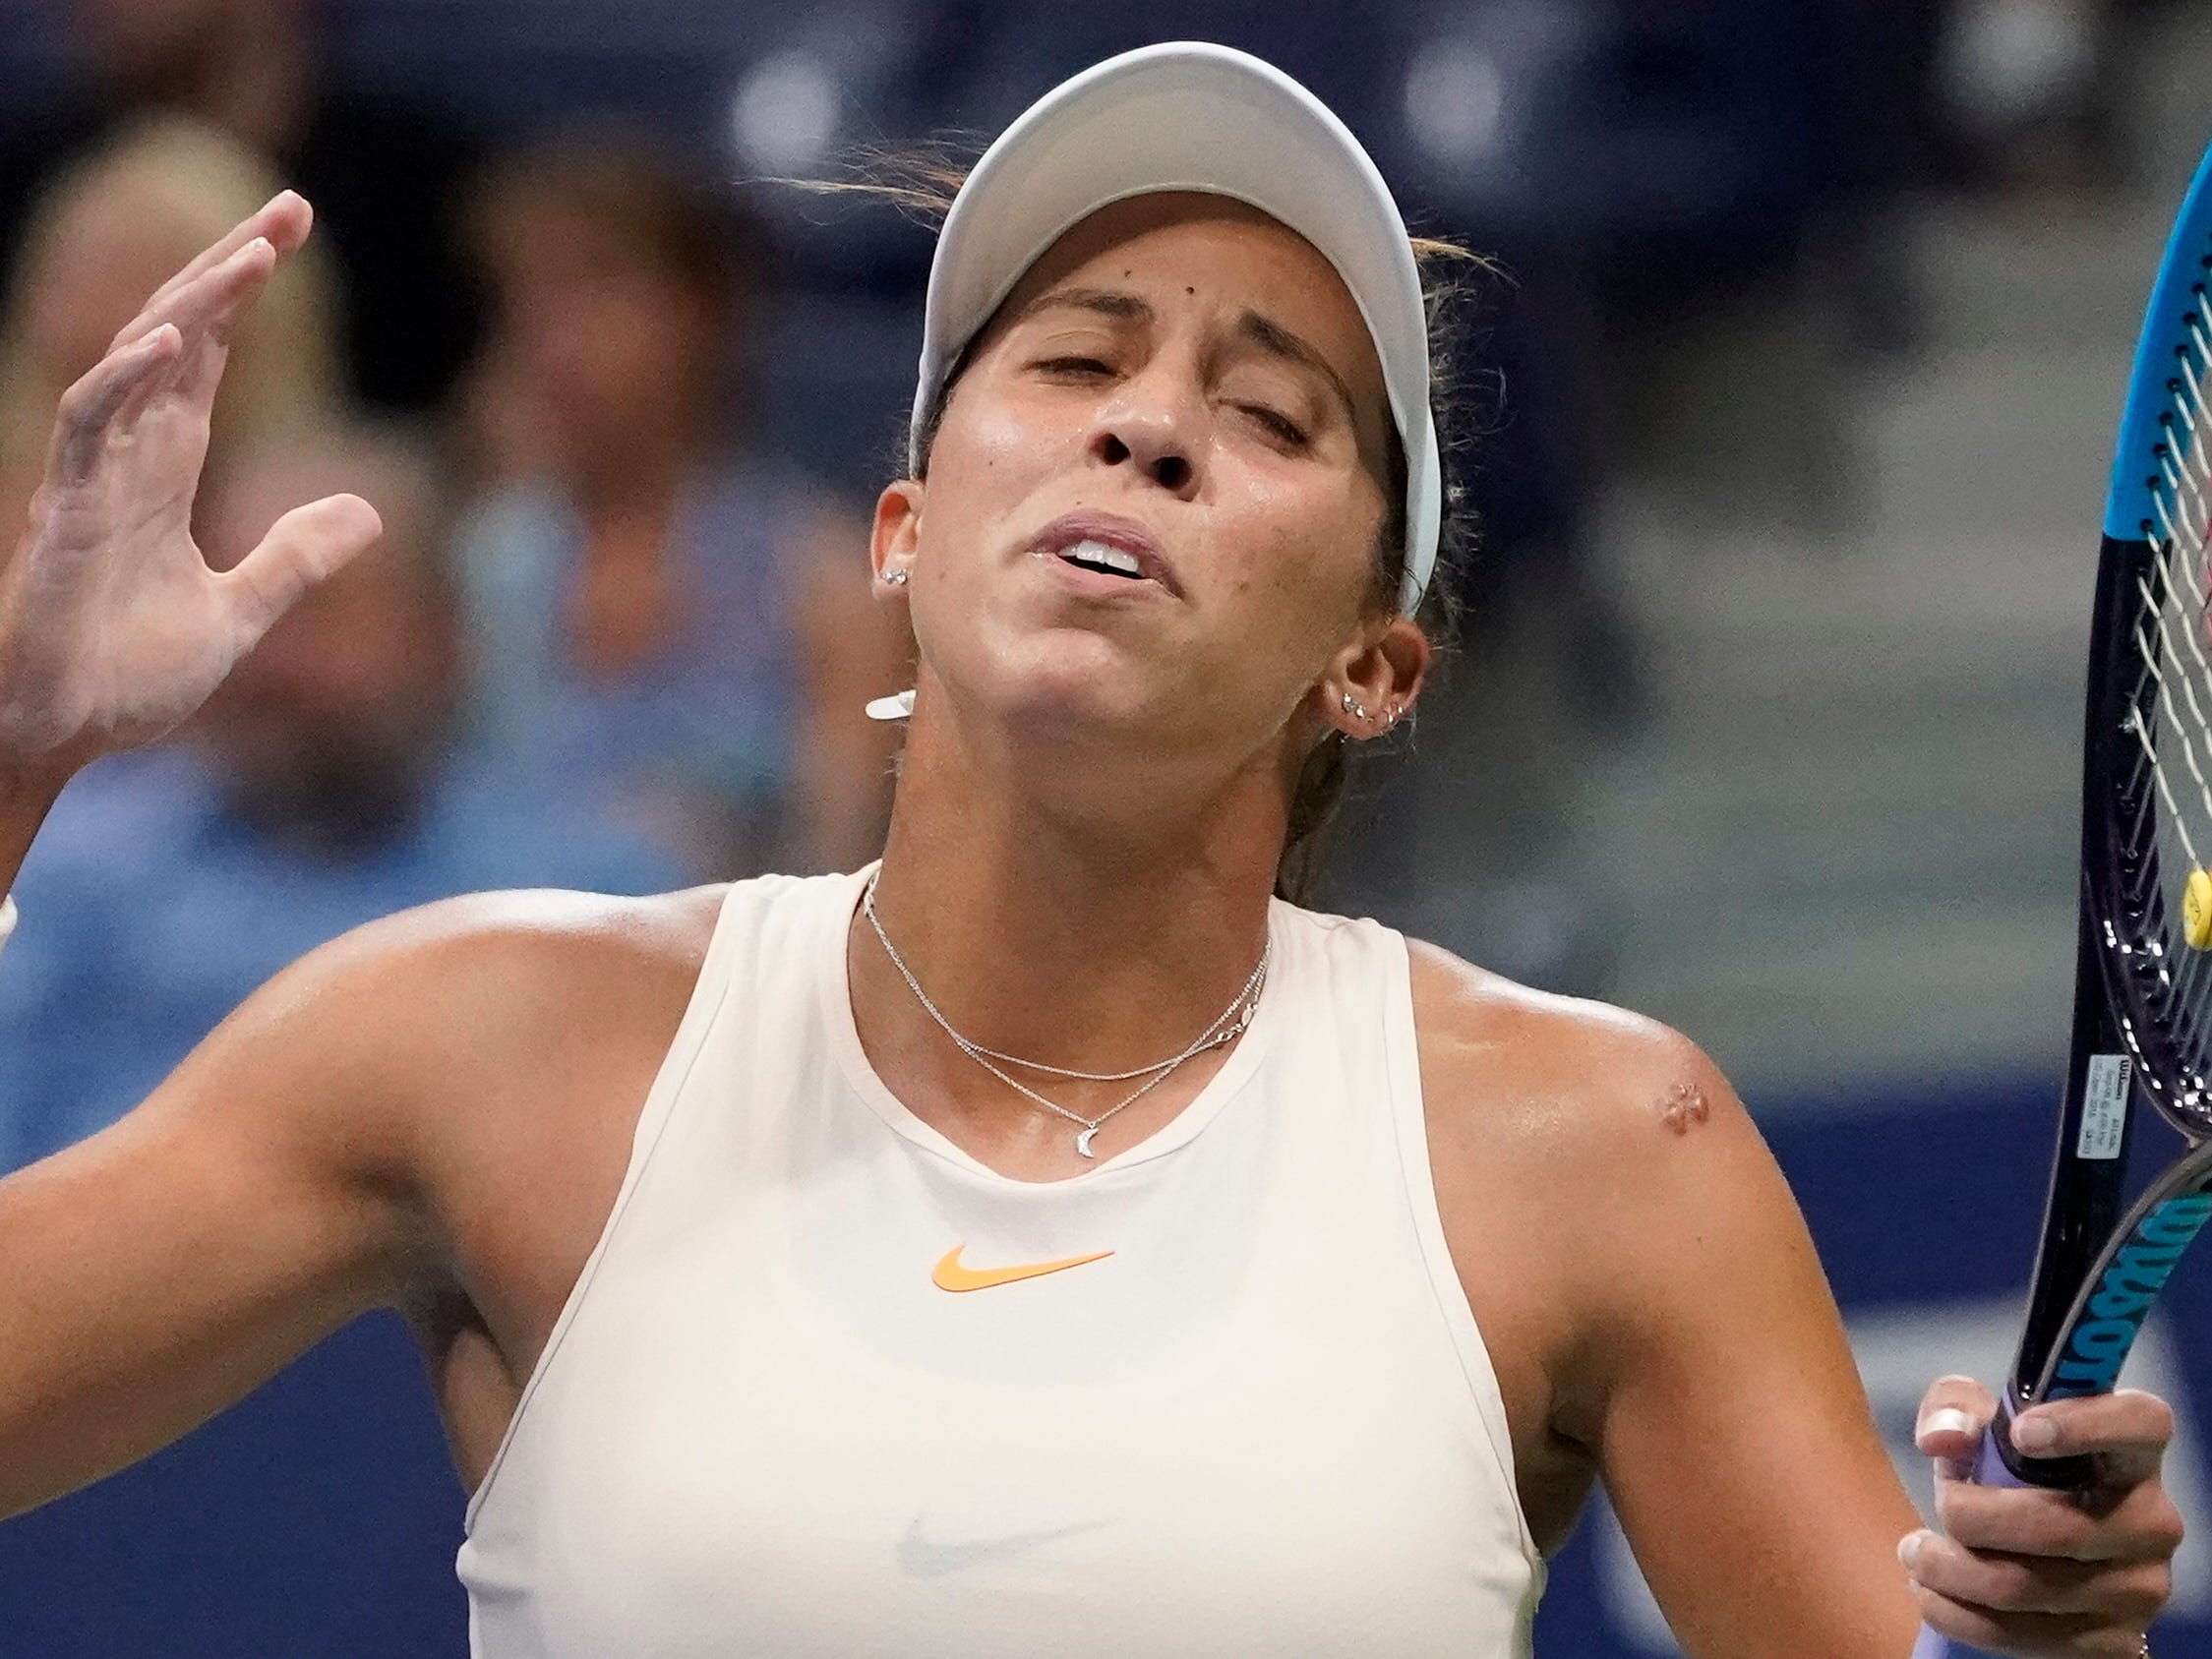 Madison Keys reacts after a big miss in the second set of her 6-2, 6-4 loss to Naomi Osaka in their semifinal match.